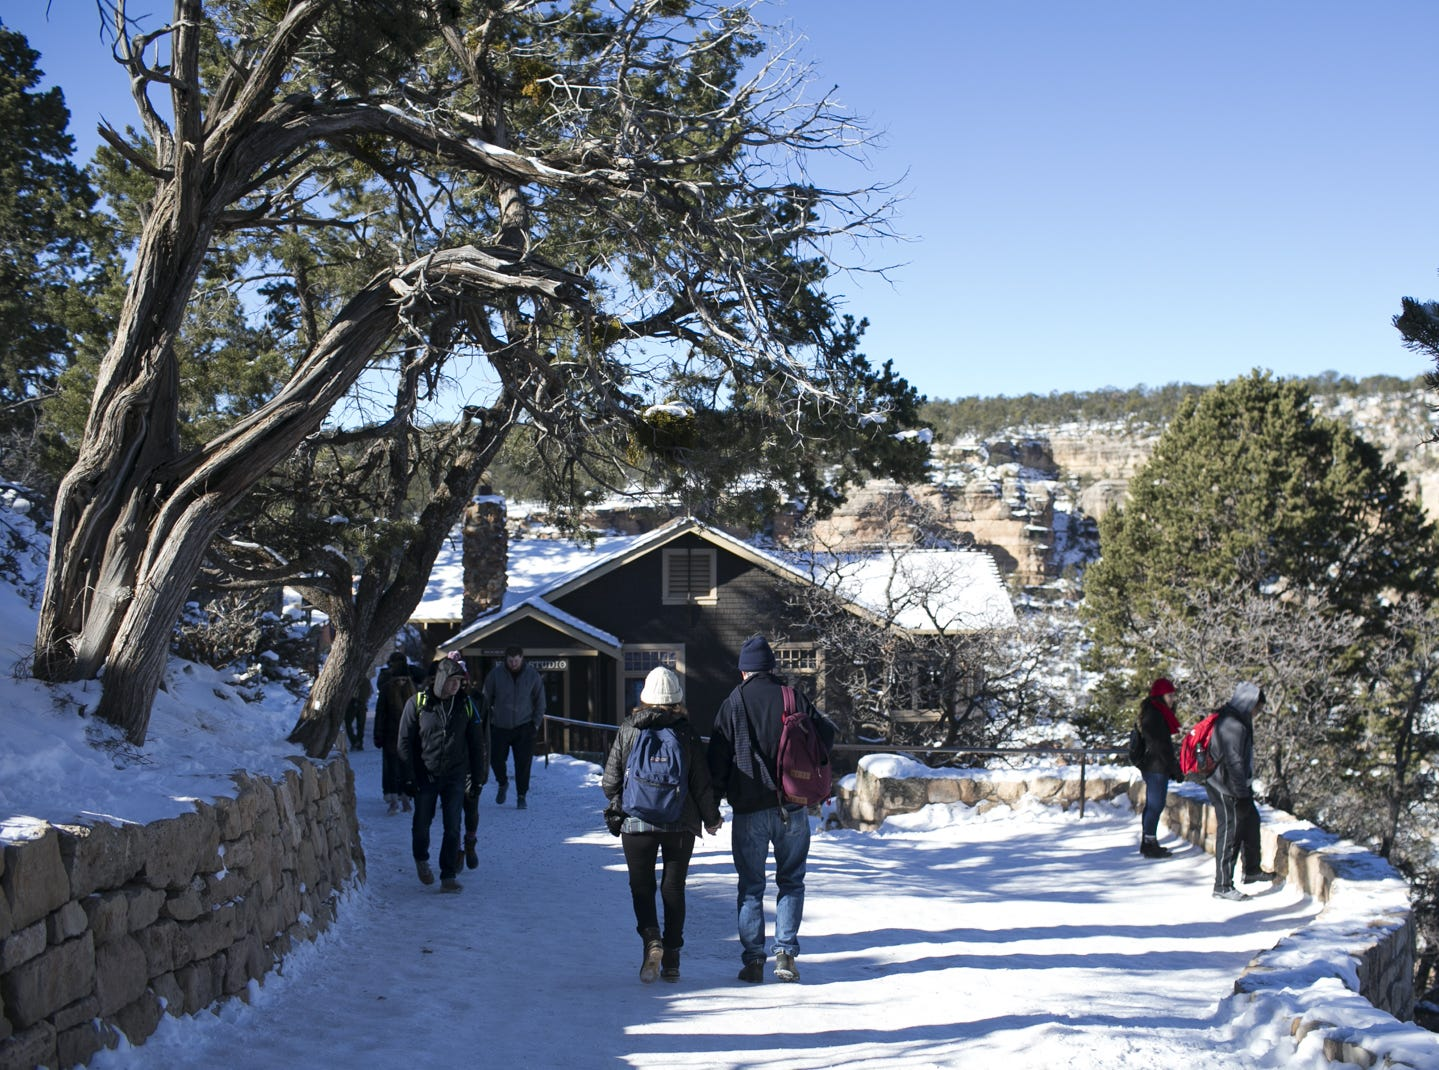 Visitors enjoy the winter weather at Grand Canyon National Park on Jan. 4, 2019. The park was staffed at minimum capacity due to the government shutdown but retained much of its services due to an executive order issued by Arizona Gov. Doug Ducey to run the park with state funds in the event of a shutdown.